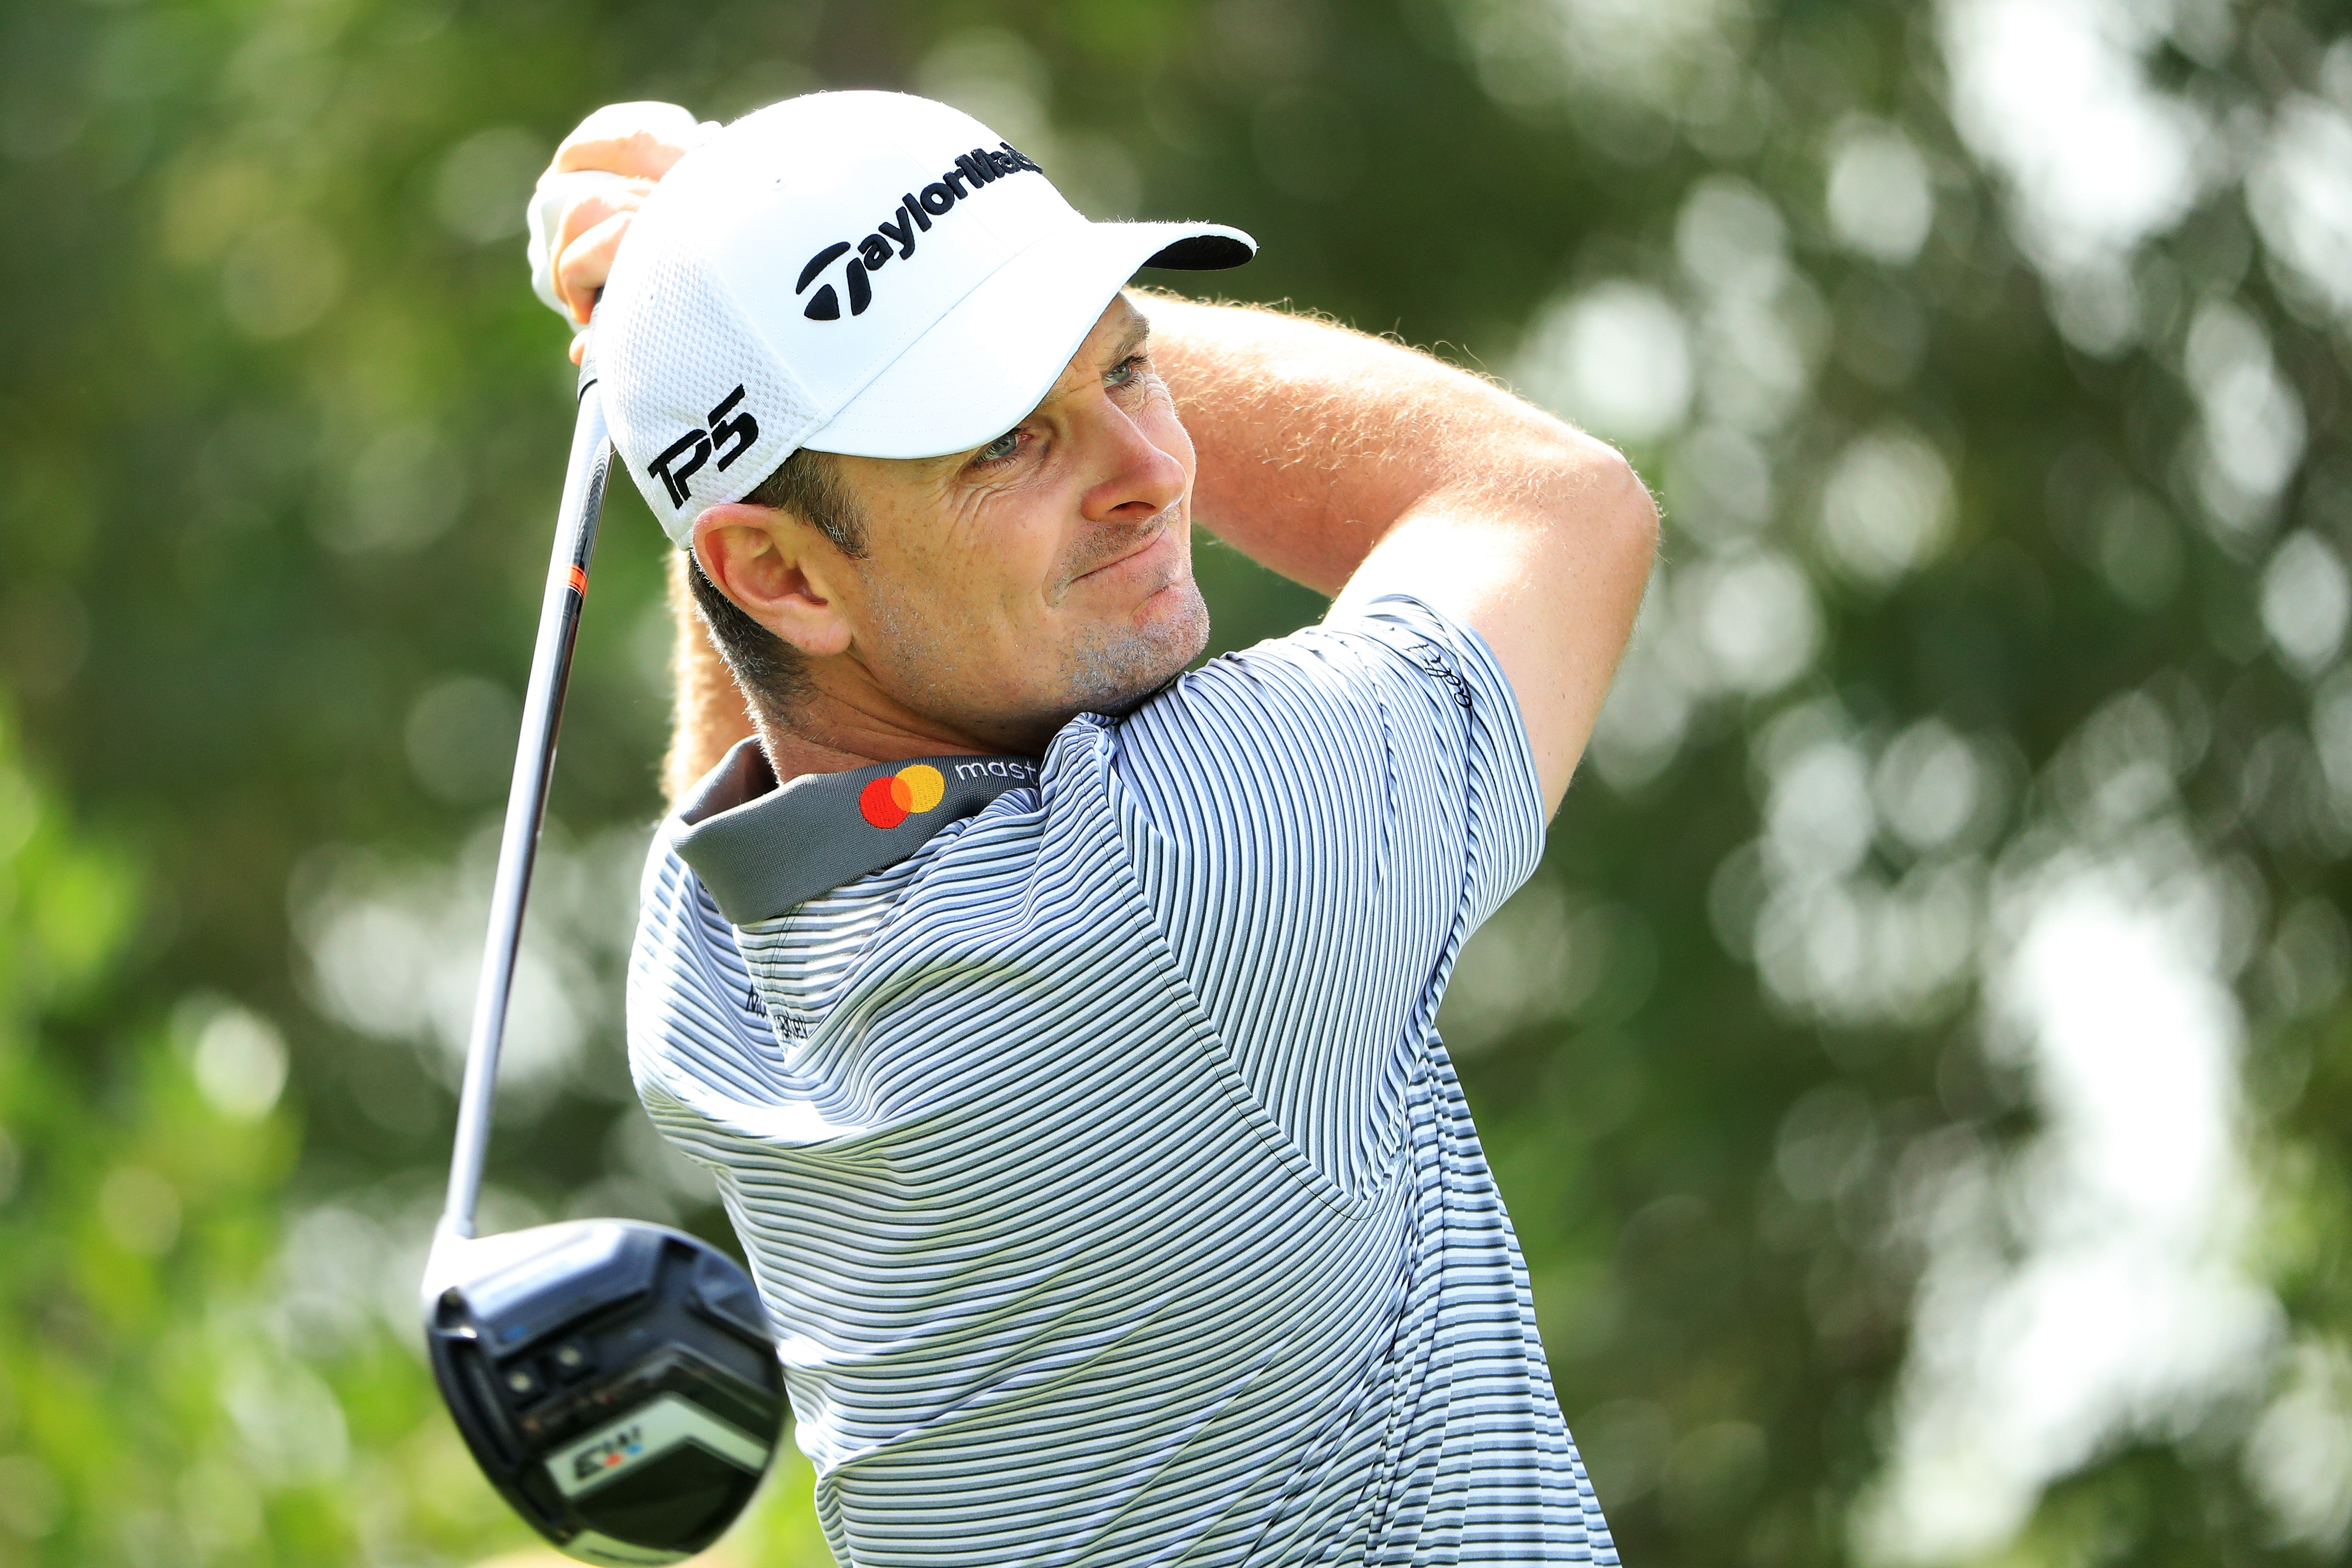 Justin Rose Driver: Justin Rose: GolfMagic's No.1 Tip For The 2018 Masters